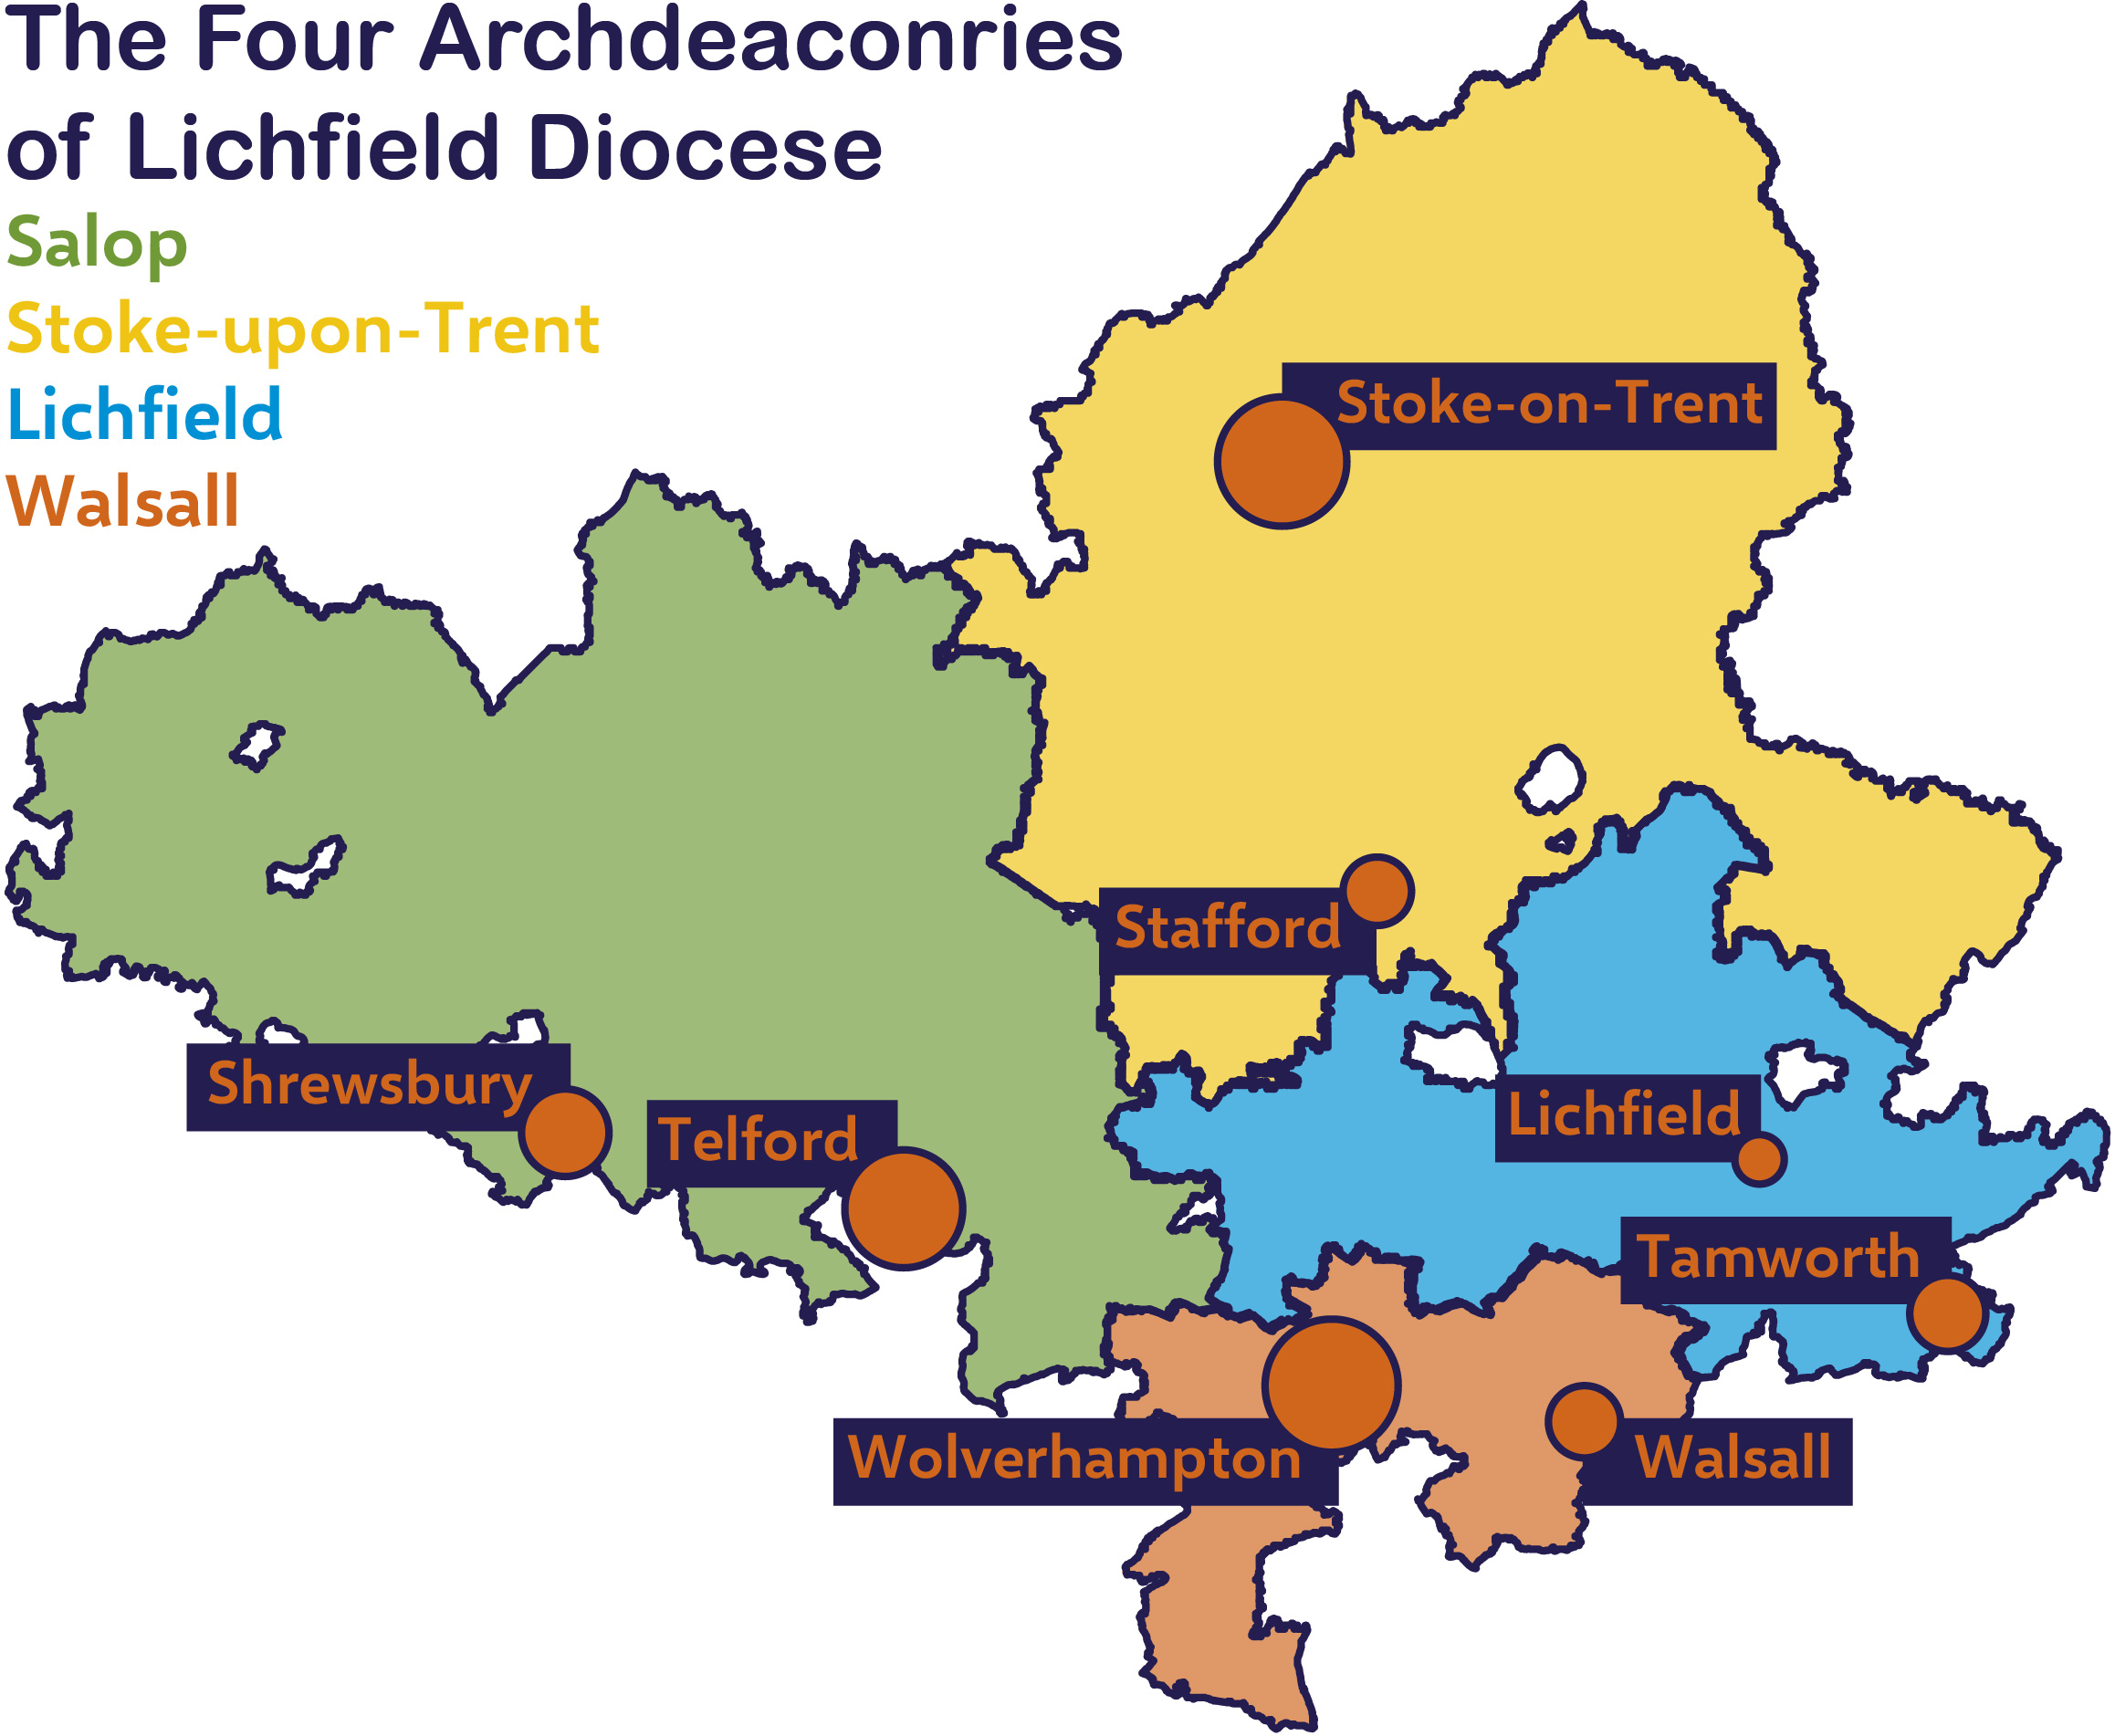 map showing the four archdeaconries of the Diocese and the key towns.